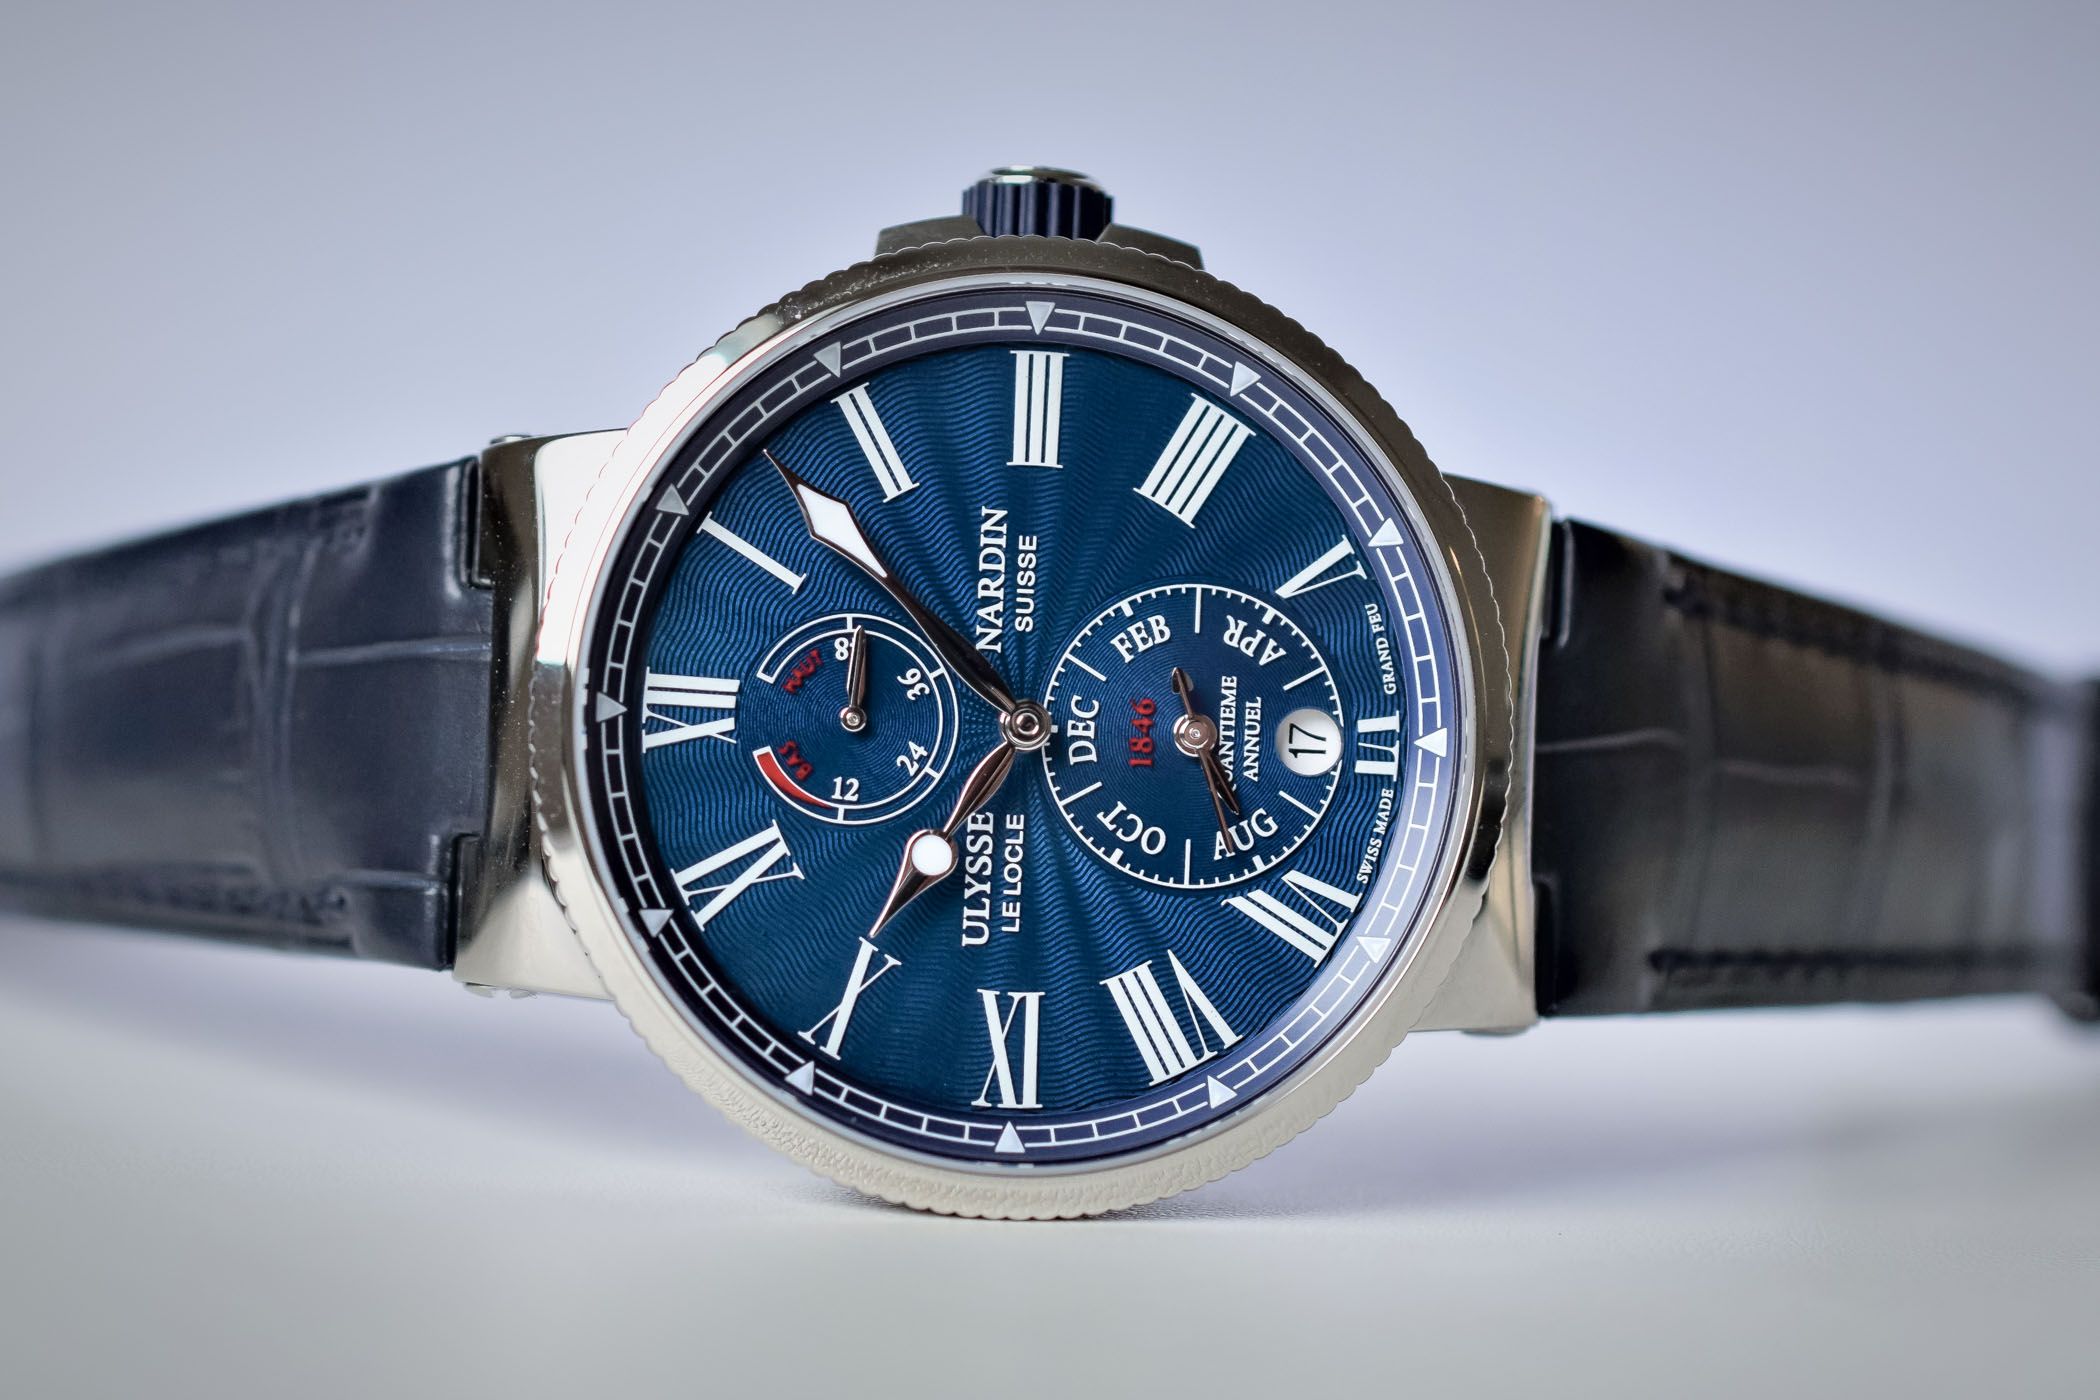 Buying Guide 2017 Annual Calendar Watches - Ulysse Nardin Marine Chronometer Annual Calendar